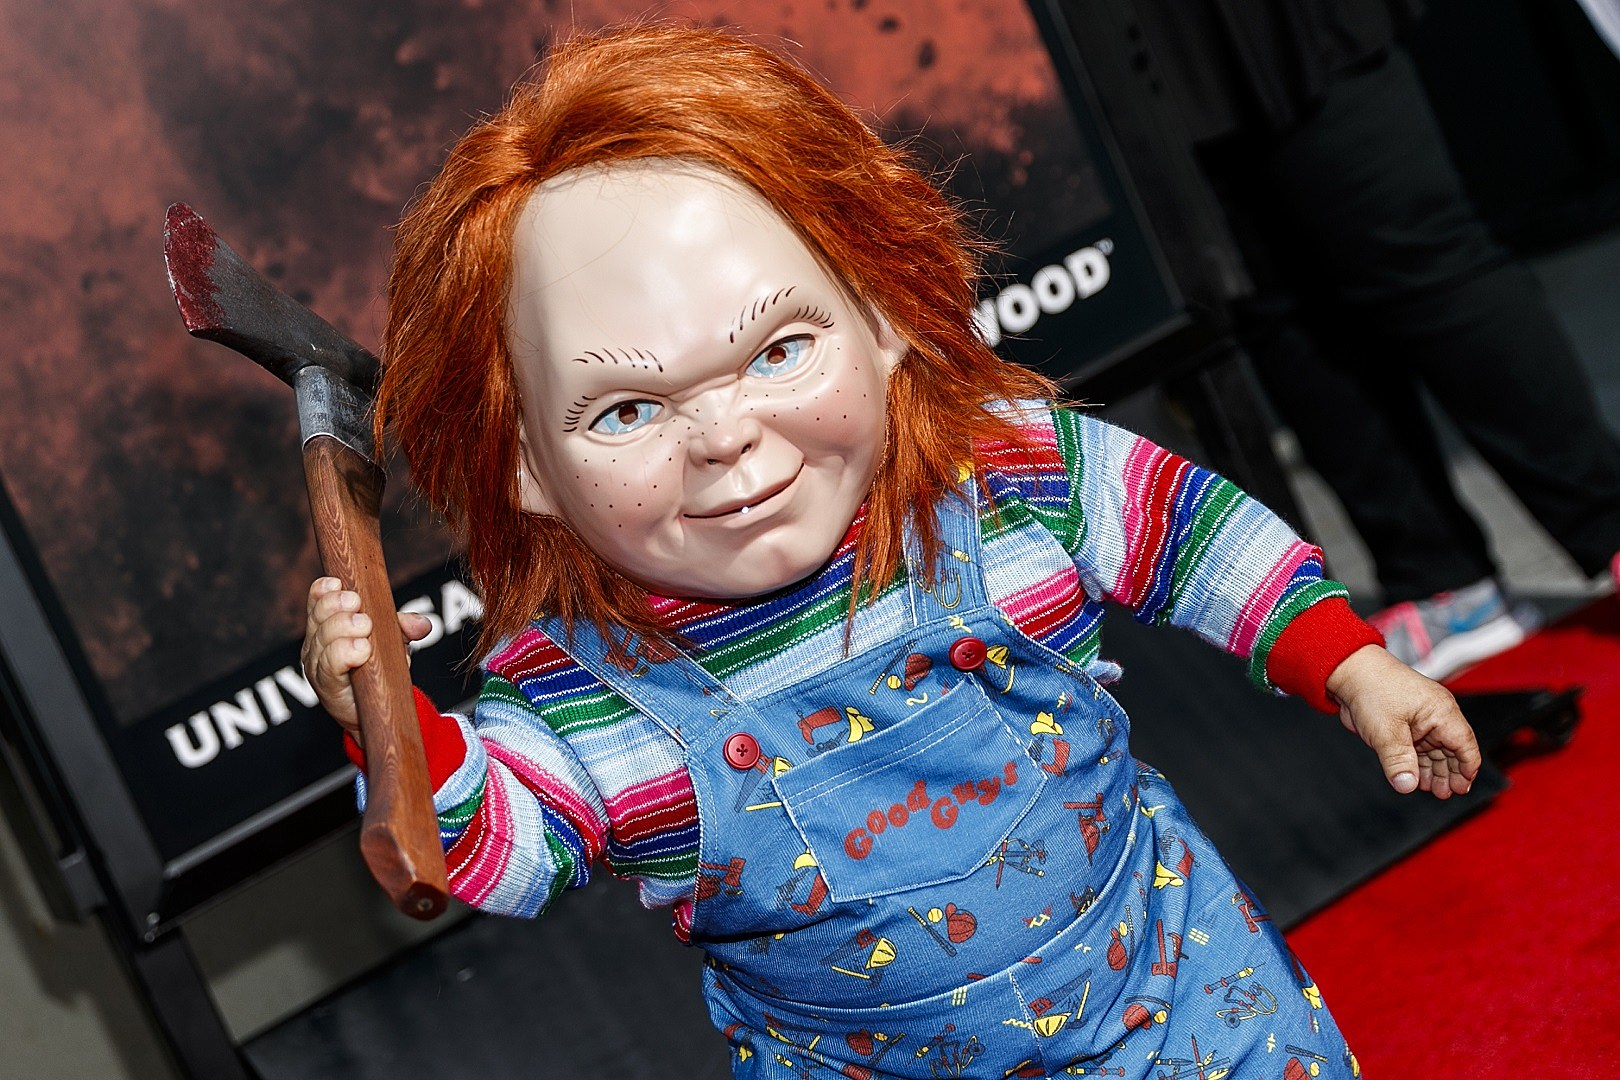 'Child's Play' Reboot Gets Release Date, First Teaser Poster